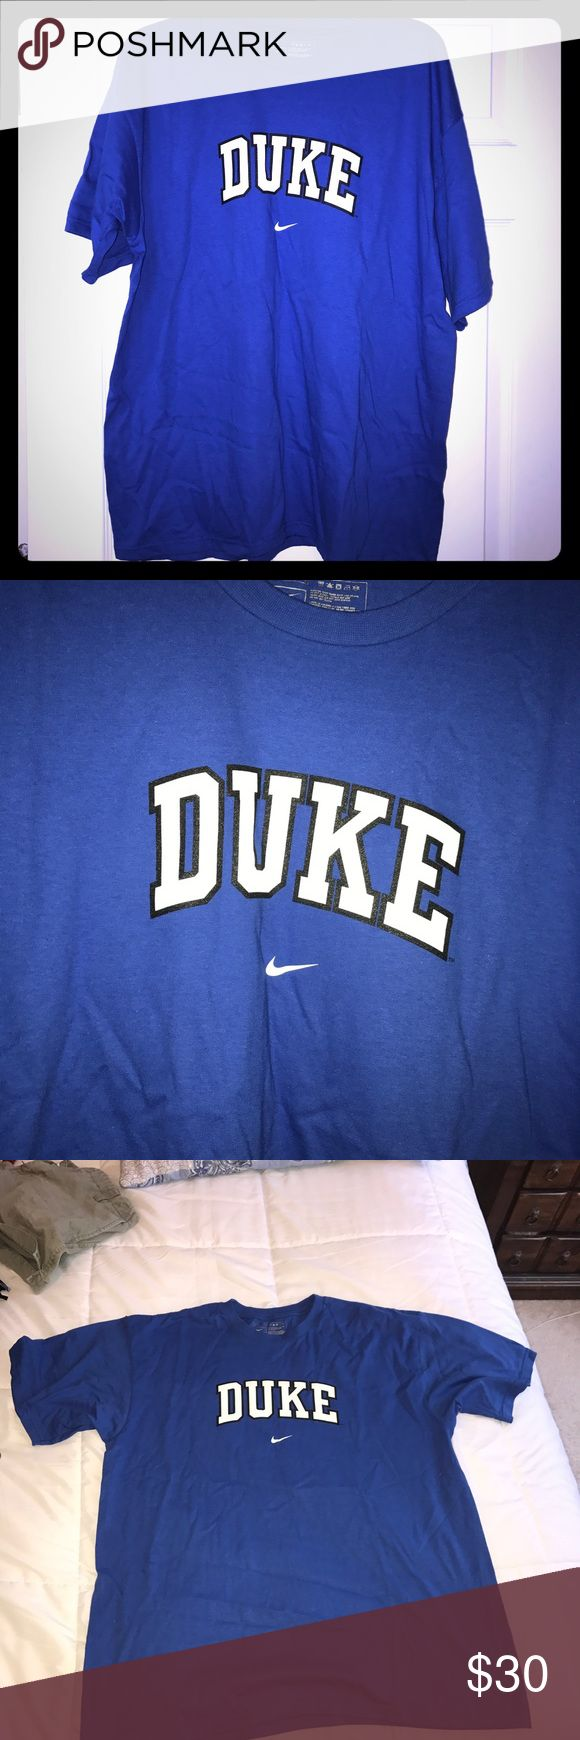 Duke t-shirt- never worn Brand new shirt. Bought for my dad but he never wore it so now I'm selling it to a fan! I already have many Duke shirts! It could fit men or women. Tops Tees - Short Sleeve